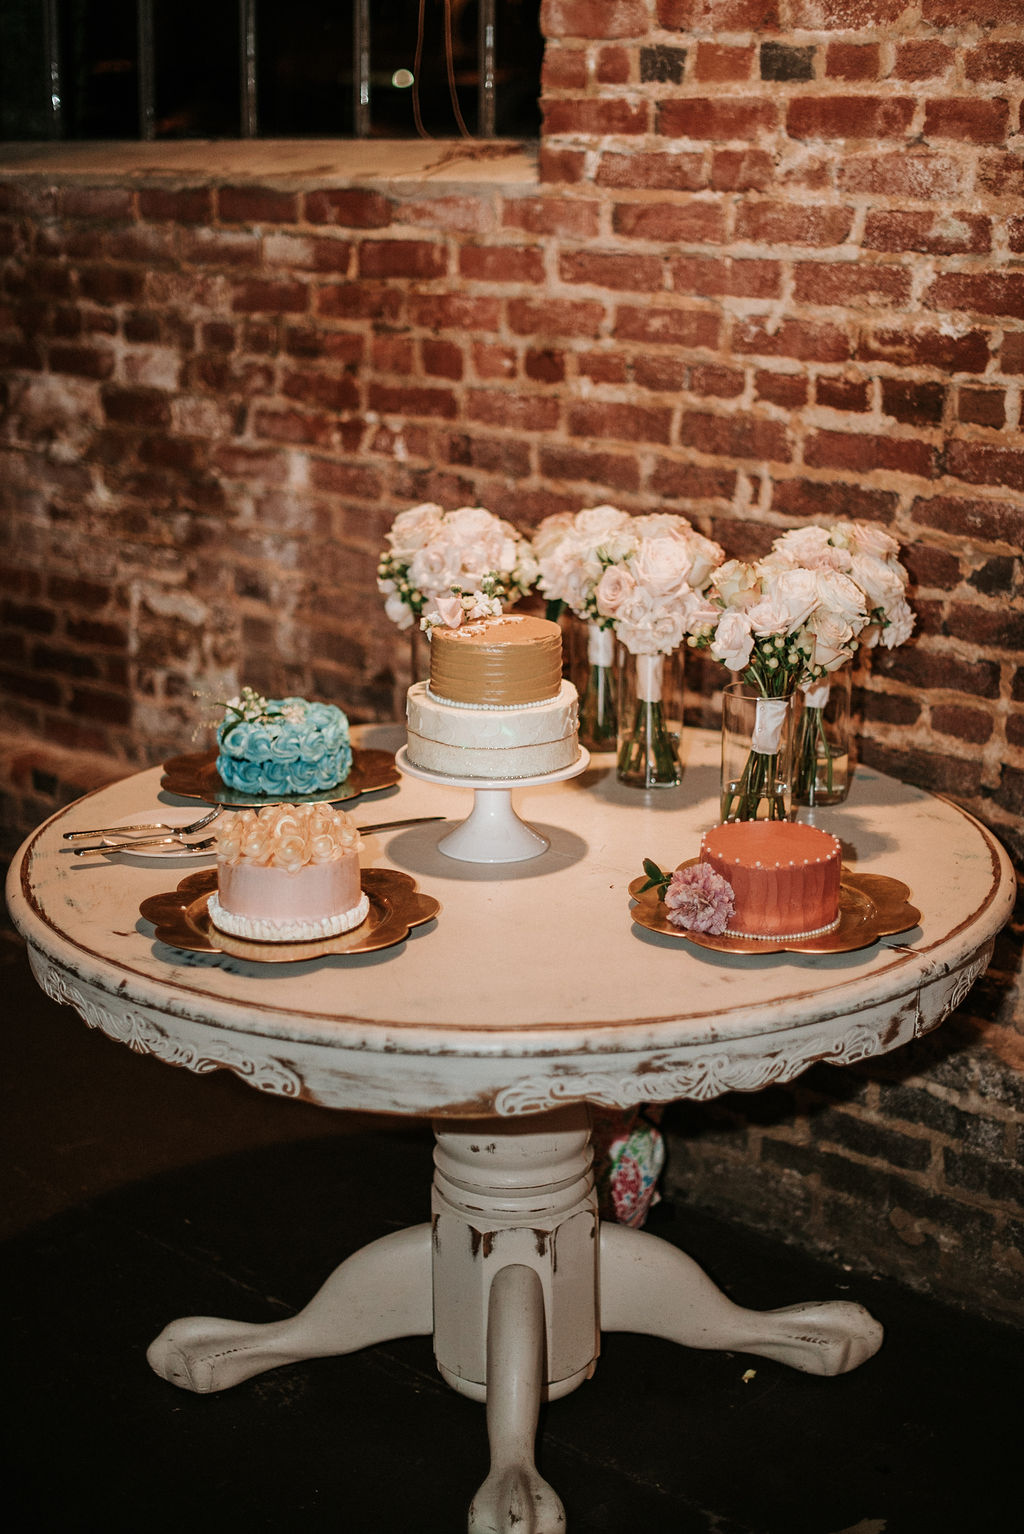 multiple wedding cakes at Inn at the Old Silk Mill